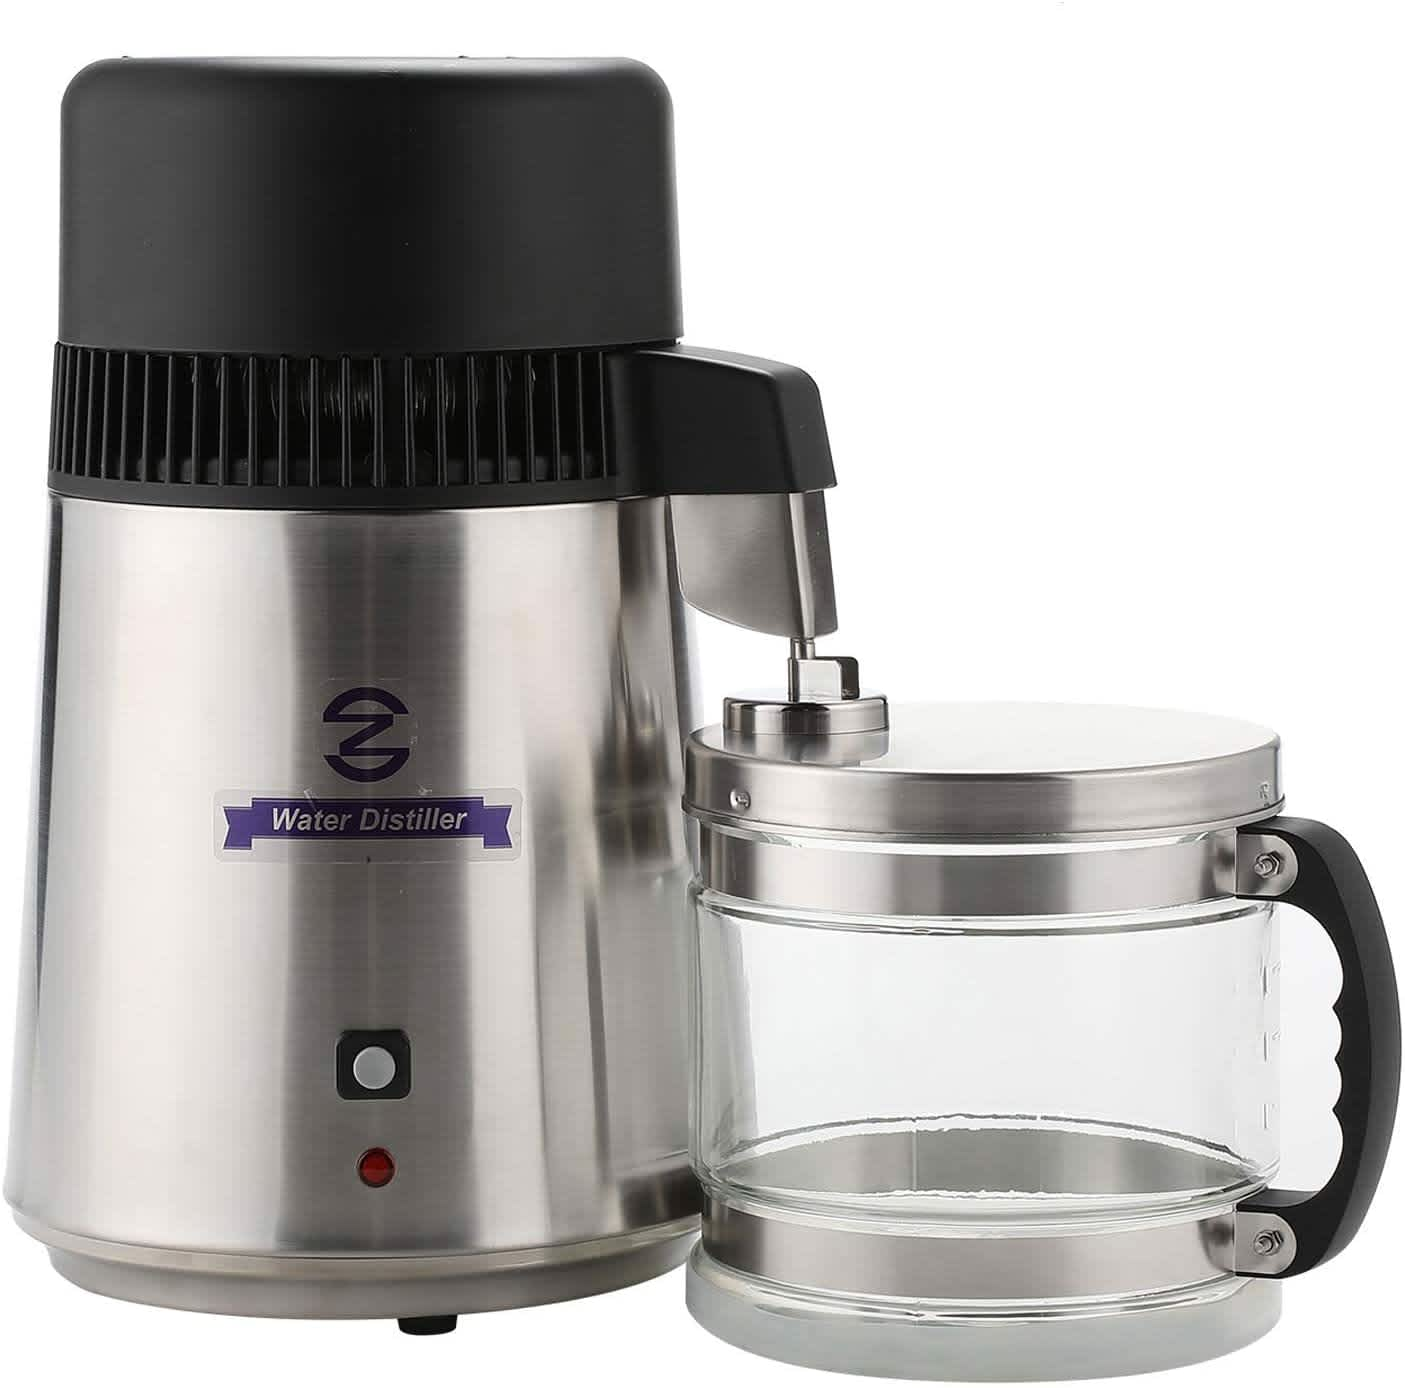 CO-Z Stainless Steel Water Distiller